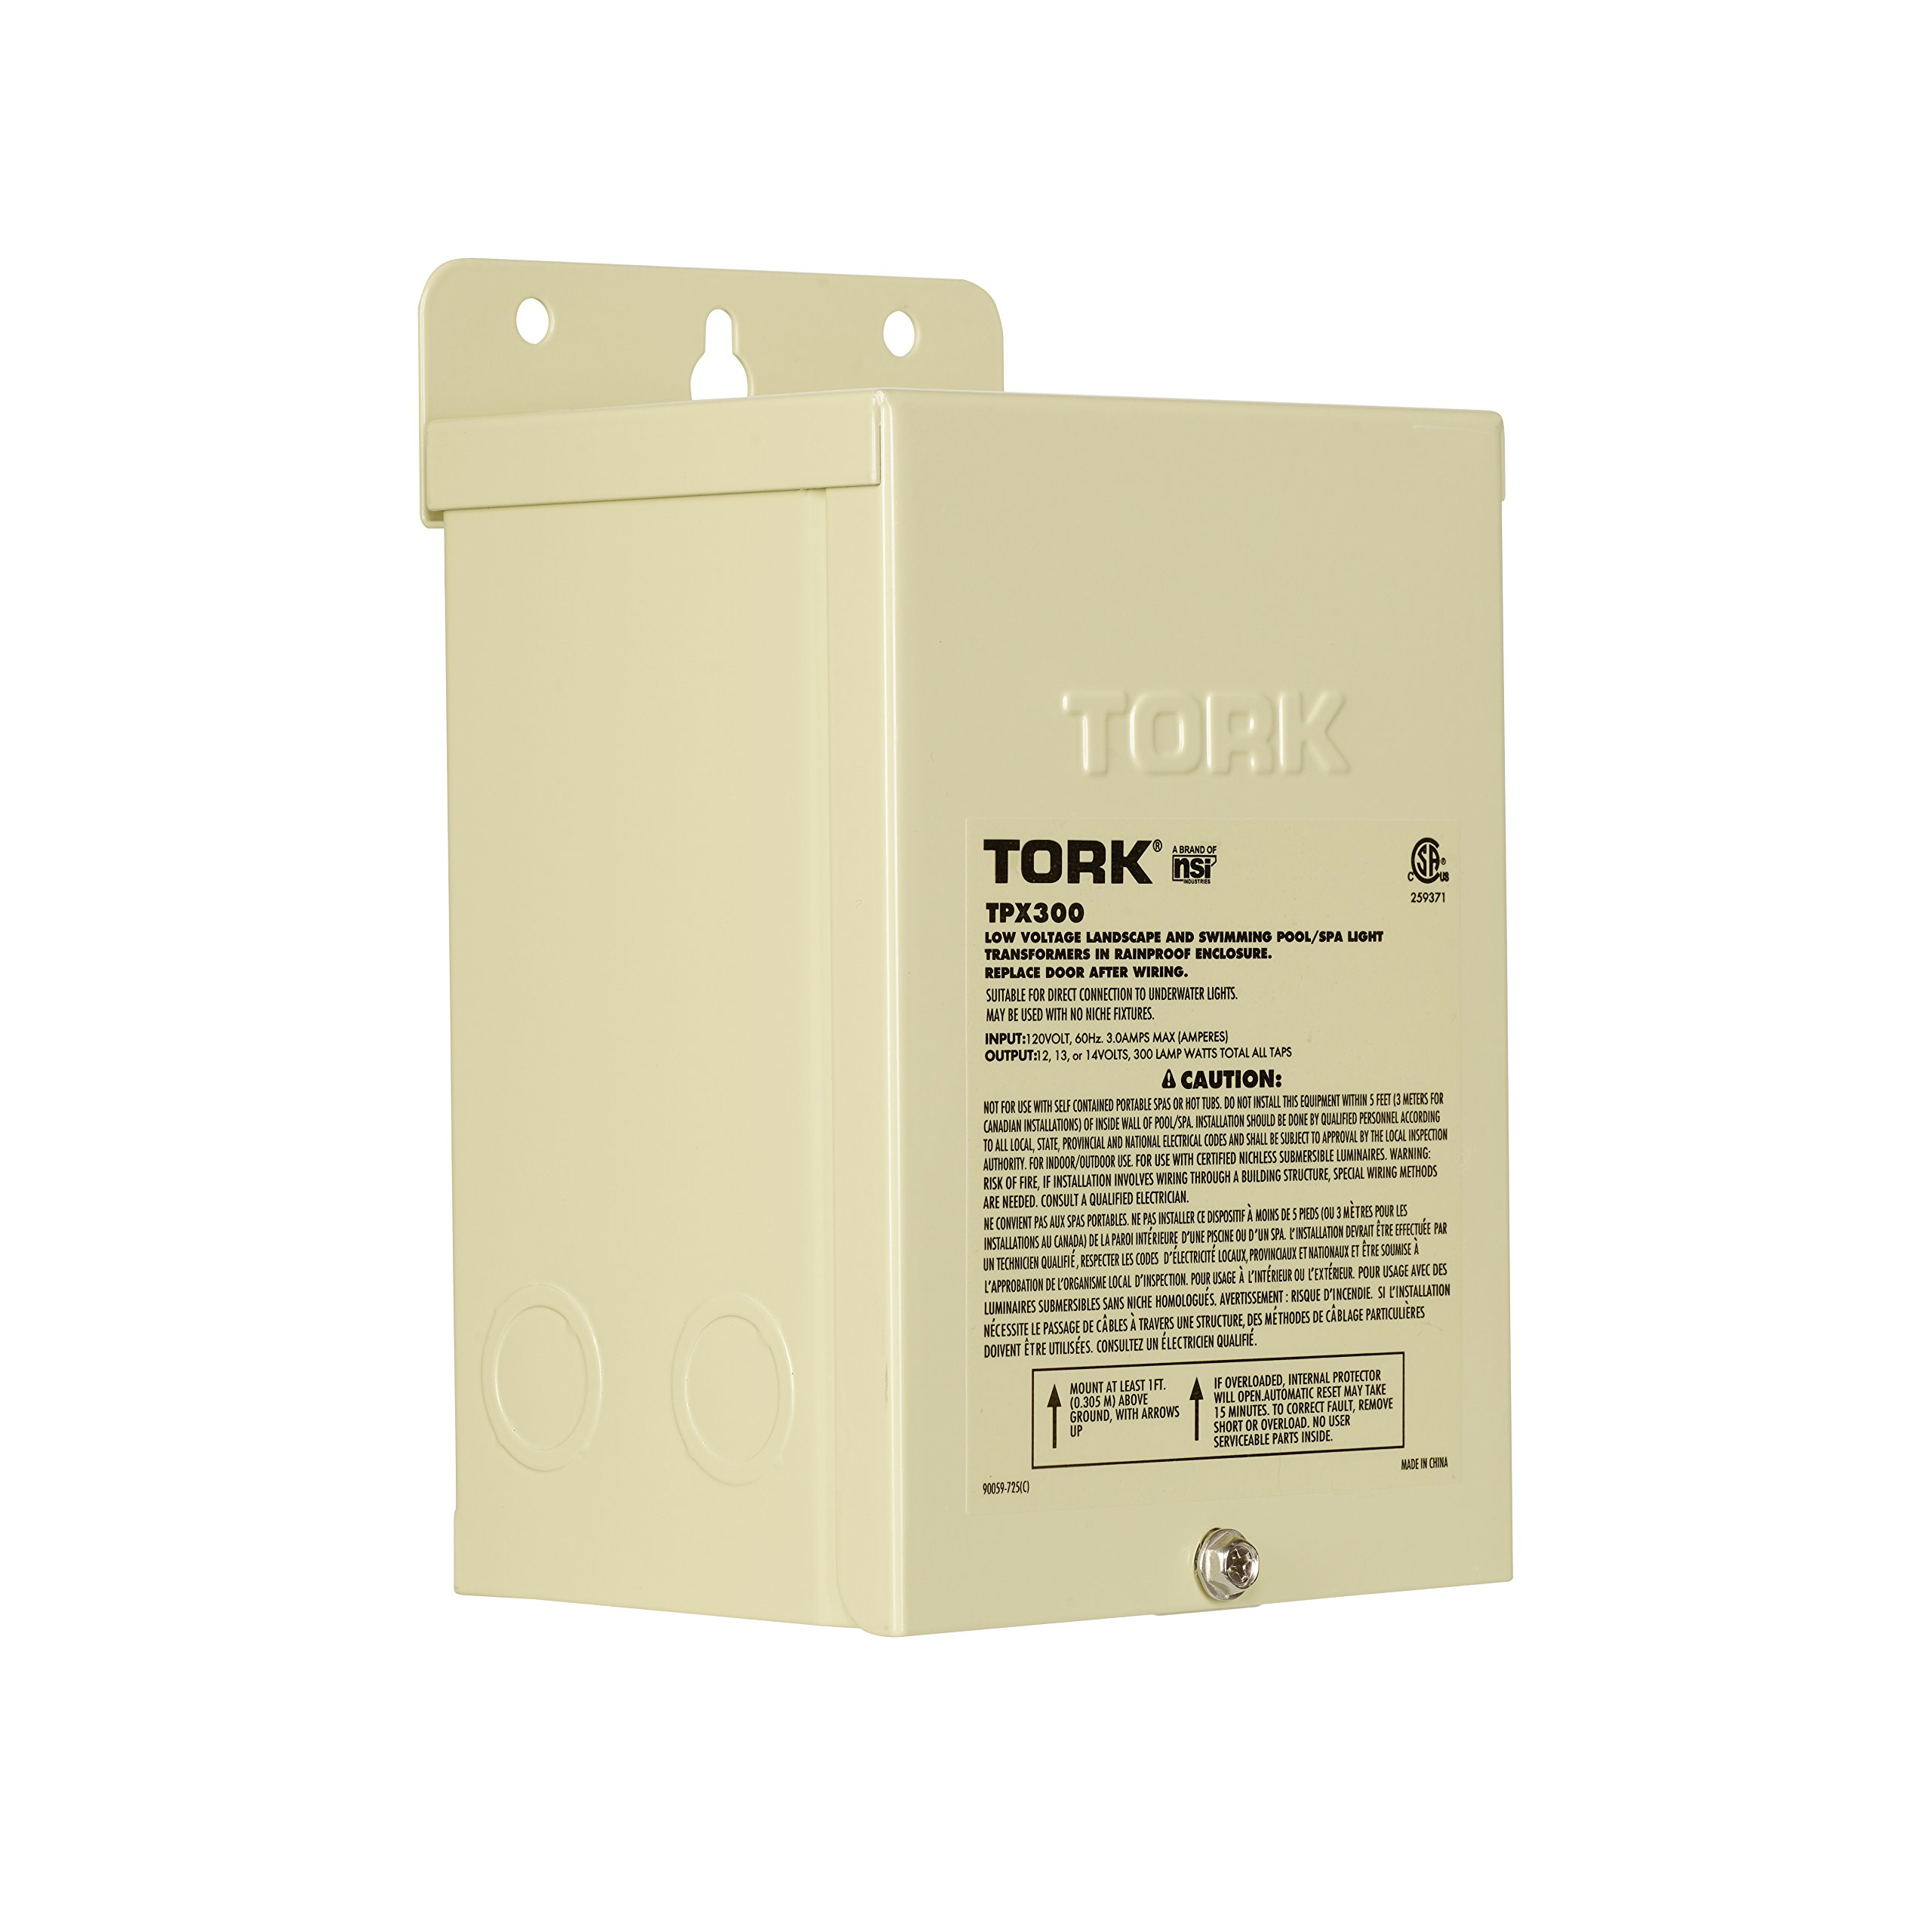 NSI Industries TORK TPX300 Low-Voltage 300-Watt Safety Transformer, for Indoor/Outdoor Pool/Spa, Landscape and Submersible Lighting Products, Beige by NSI